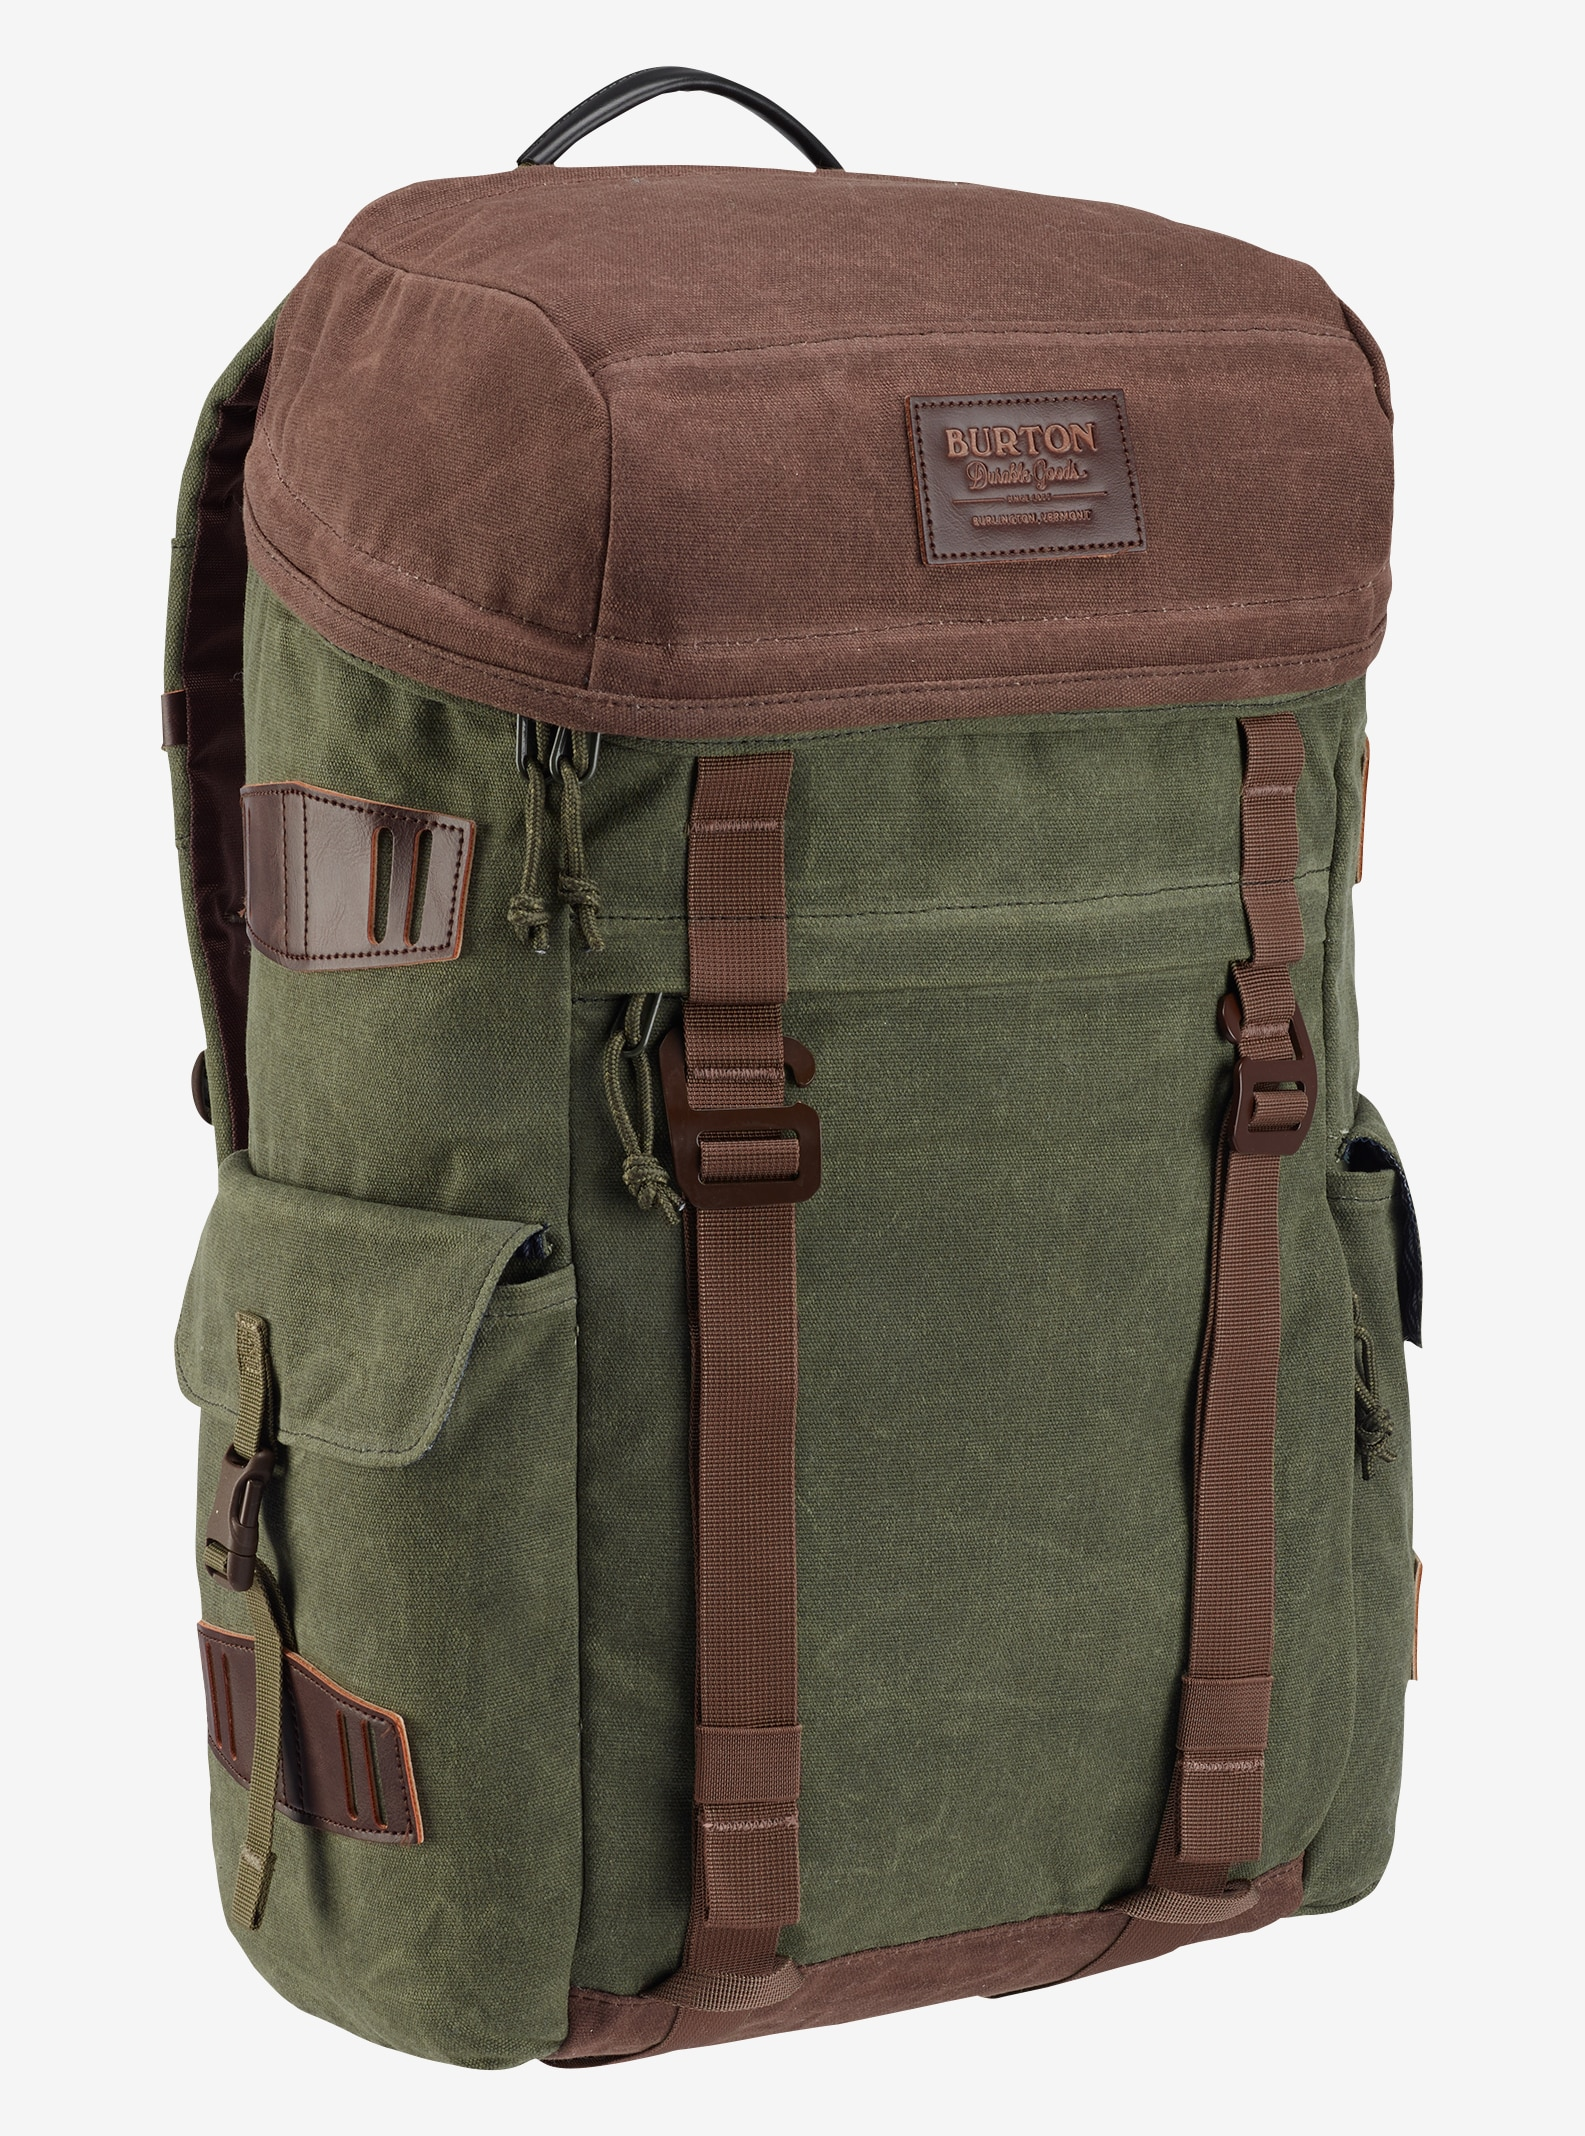 Burton Annex Backpack shown in Forest Night Waxed Canvas